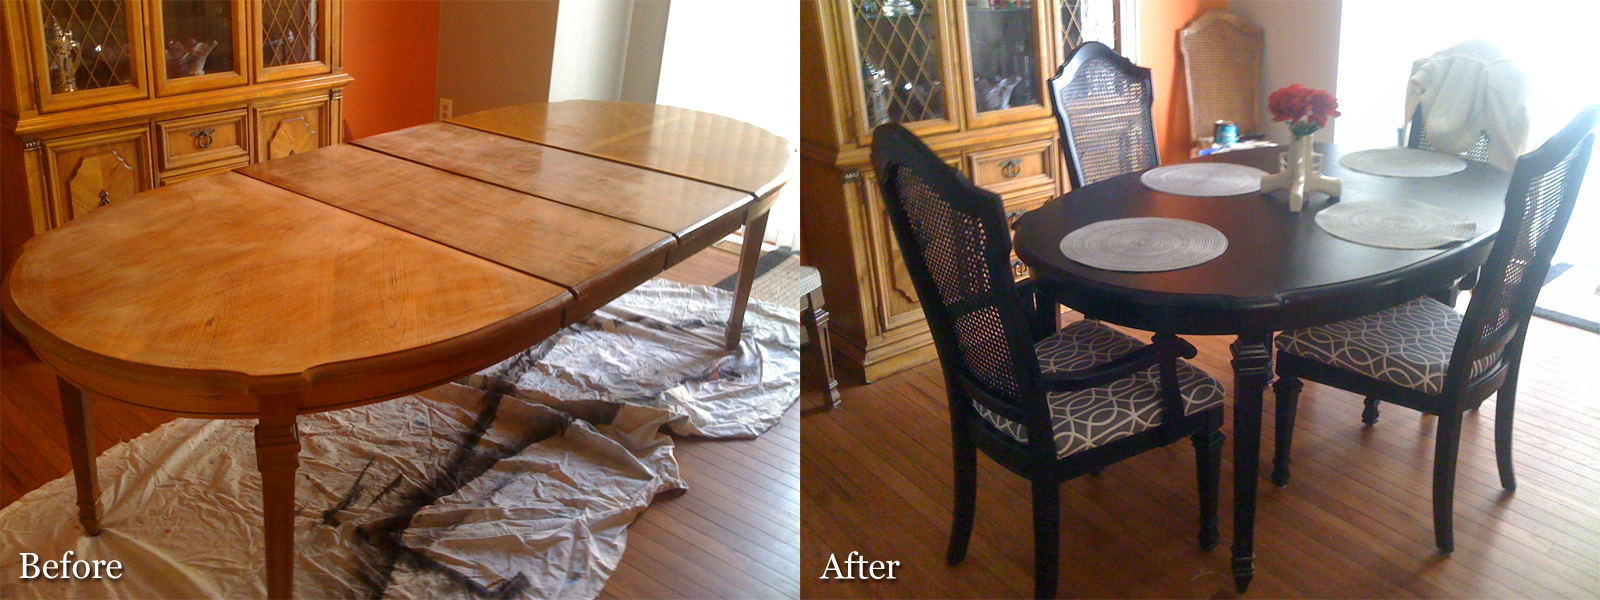 Diy refinishing a dining room table - Refinishing a kitchen table ...